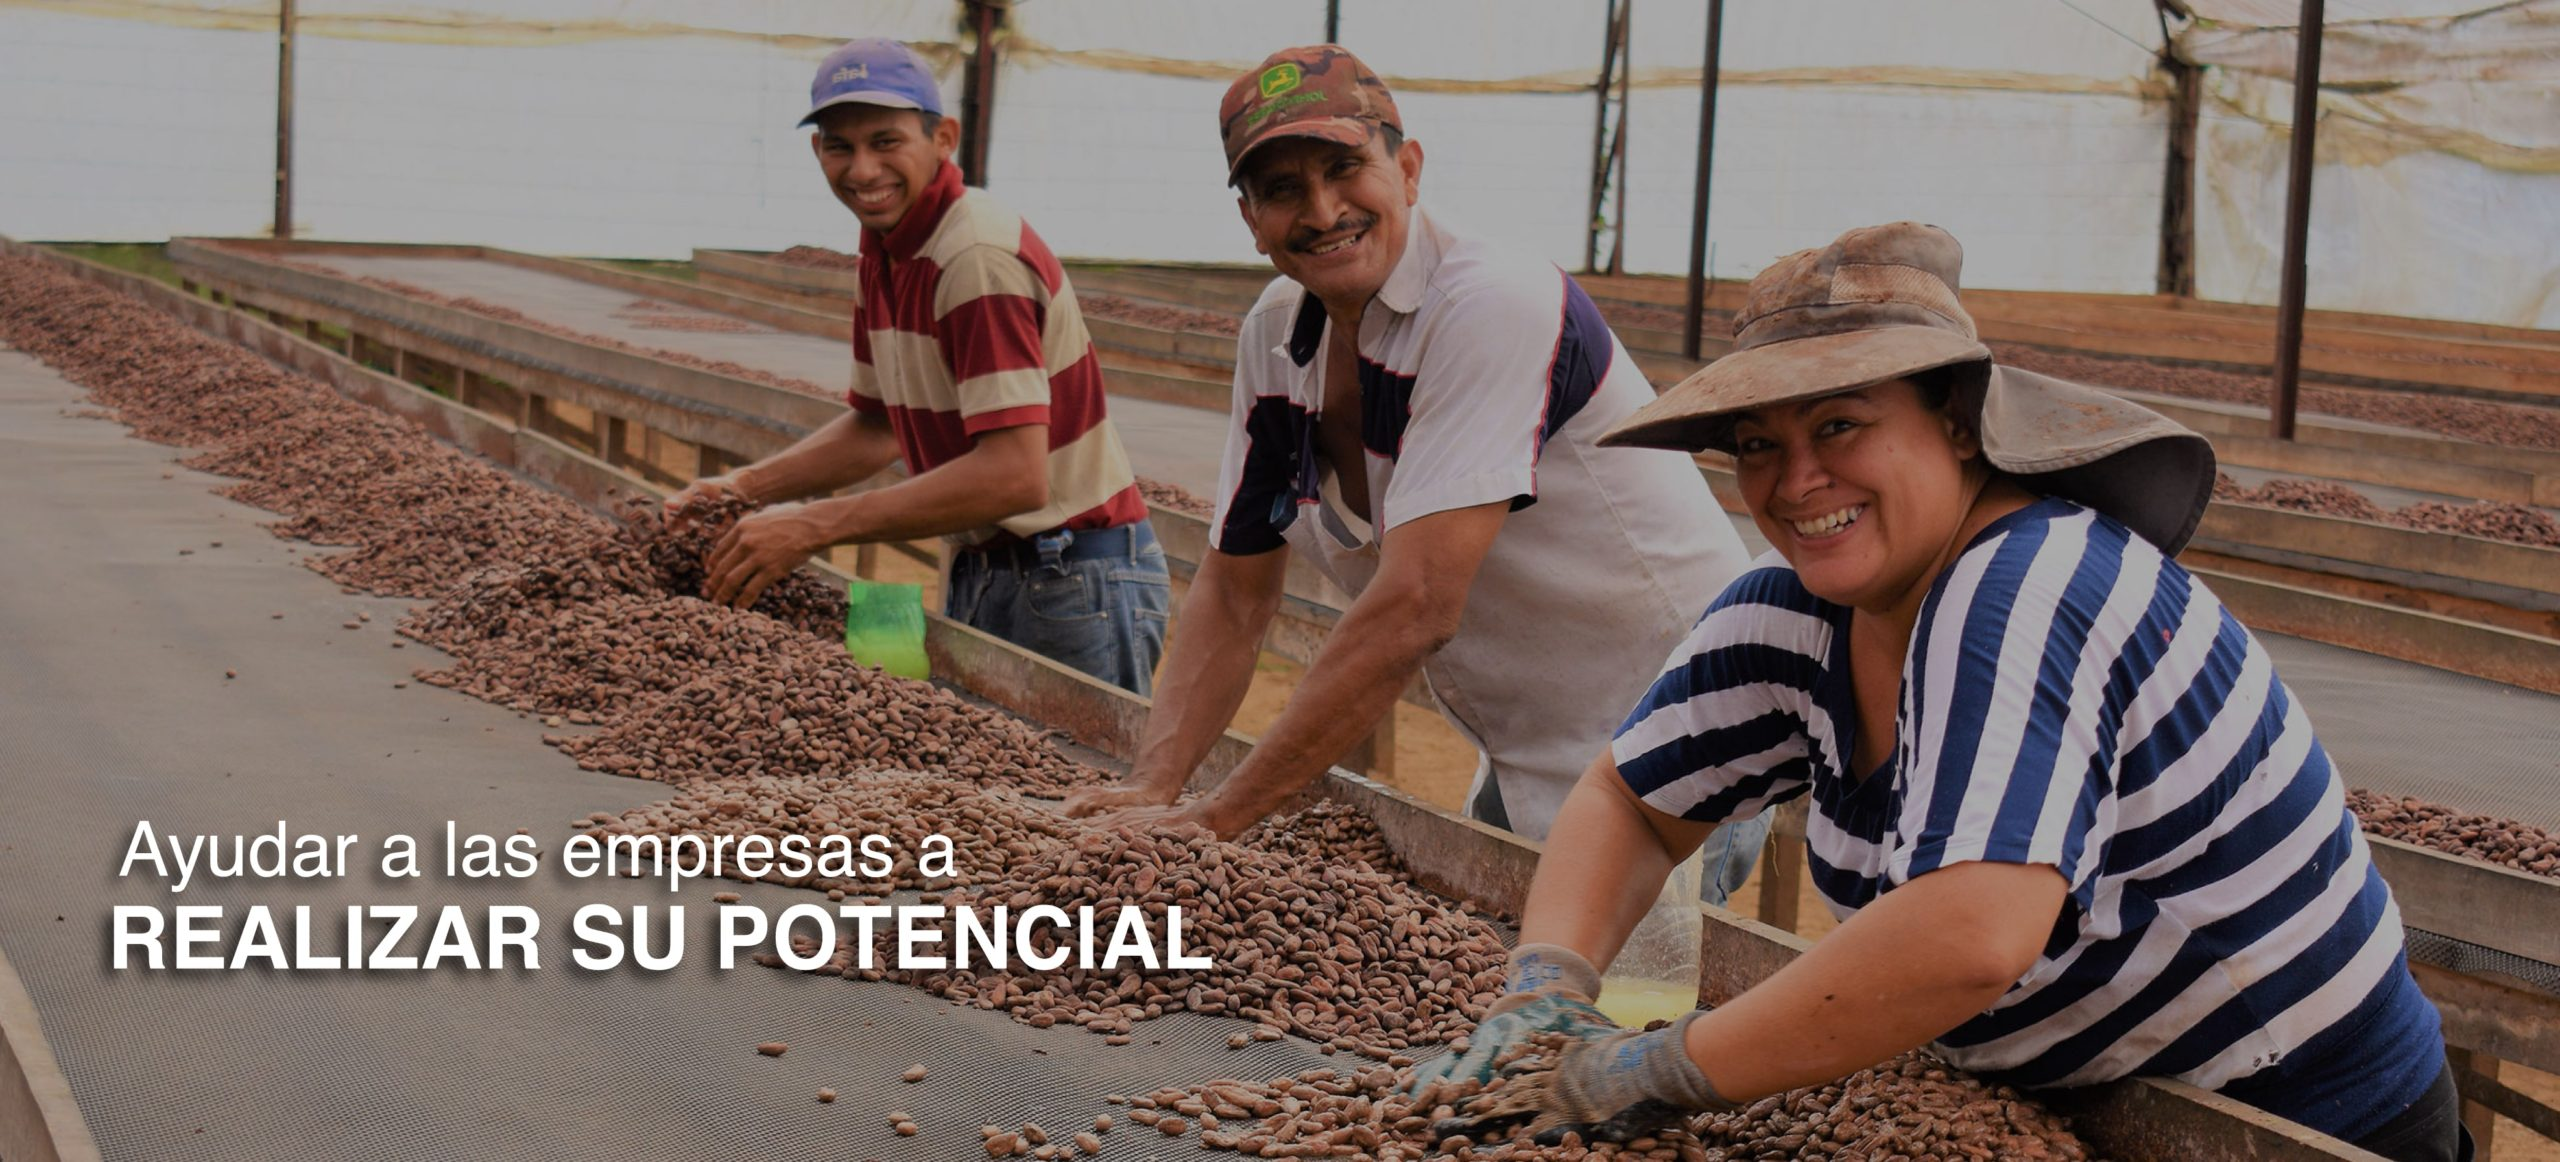 Group of smiling social impact workers sorting fine flavored cacao sourced from smallholder farmers in Latin America